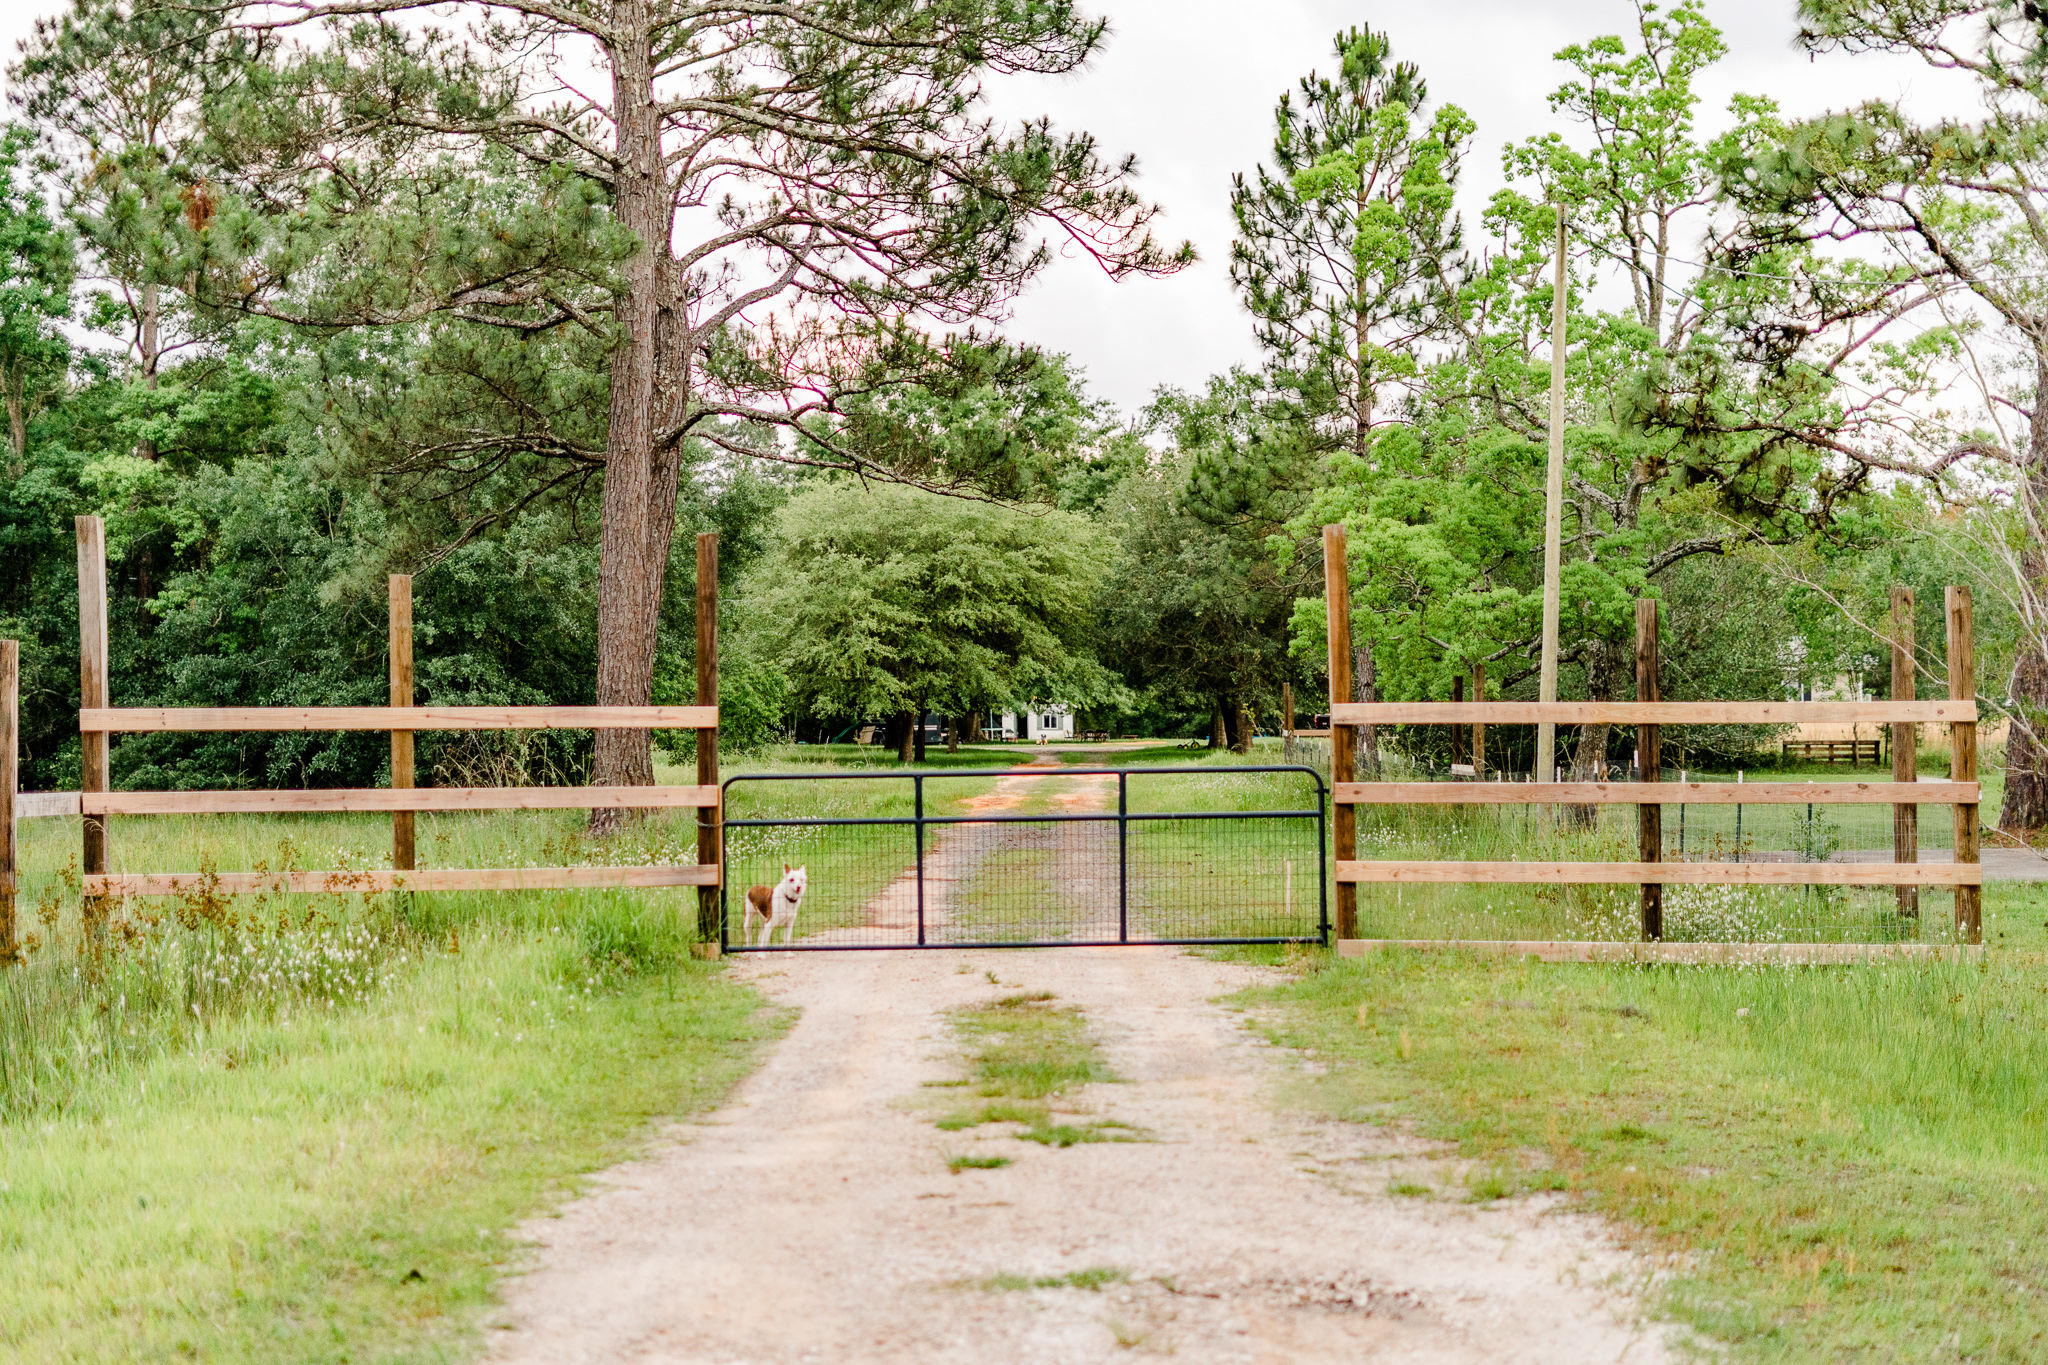 This is the front gate of Redemption Square Farm. If you call or text me to let me know you are at the gate, I'll send my happy crew (A.K.A. the Cirlot Kids) to open it for you and let you in.